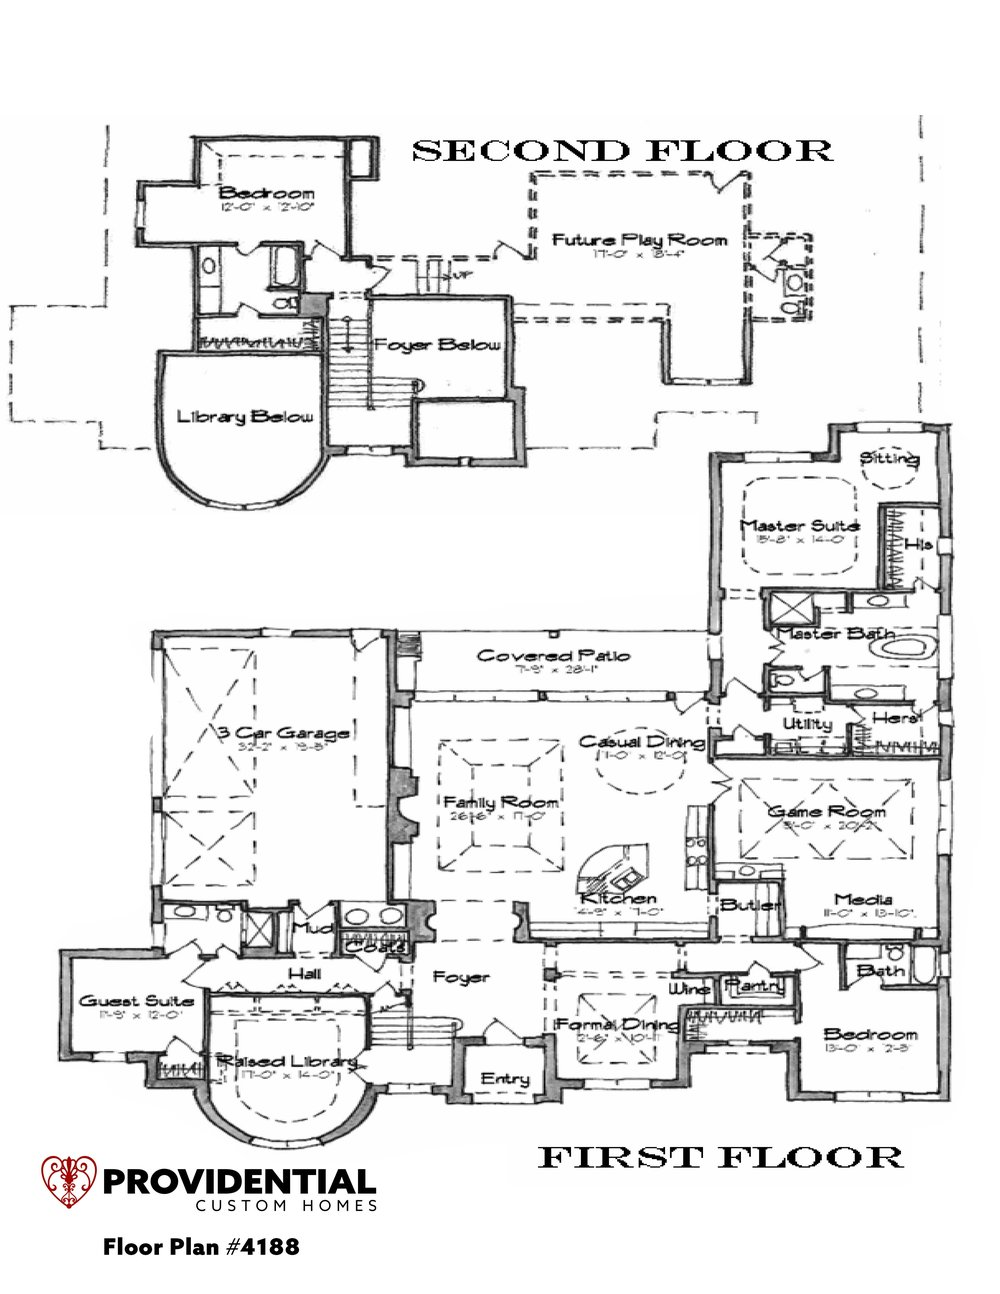 The FLOOR PLAN 4188.jpg